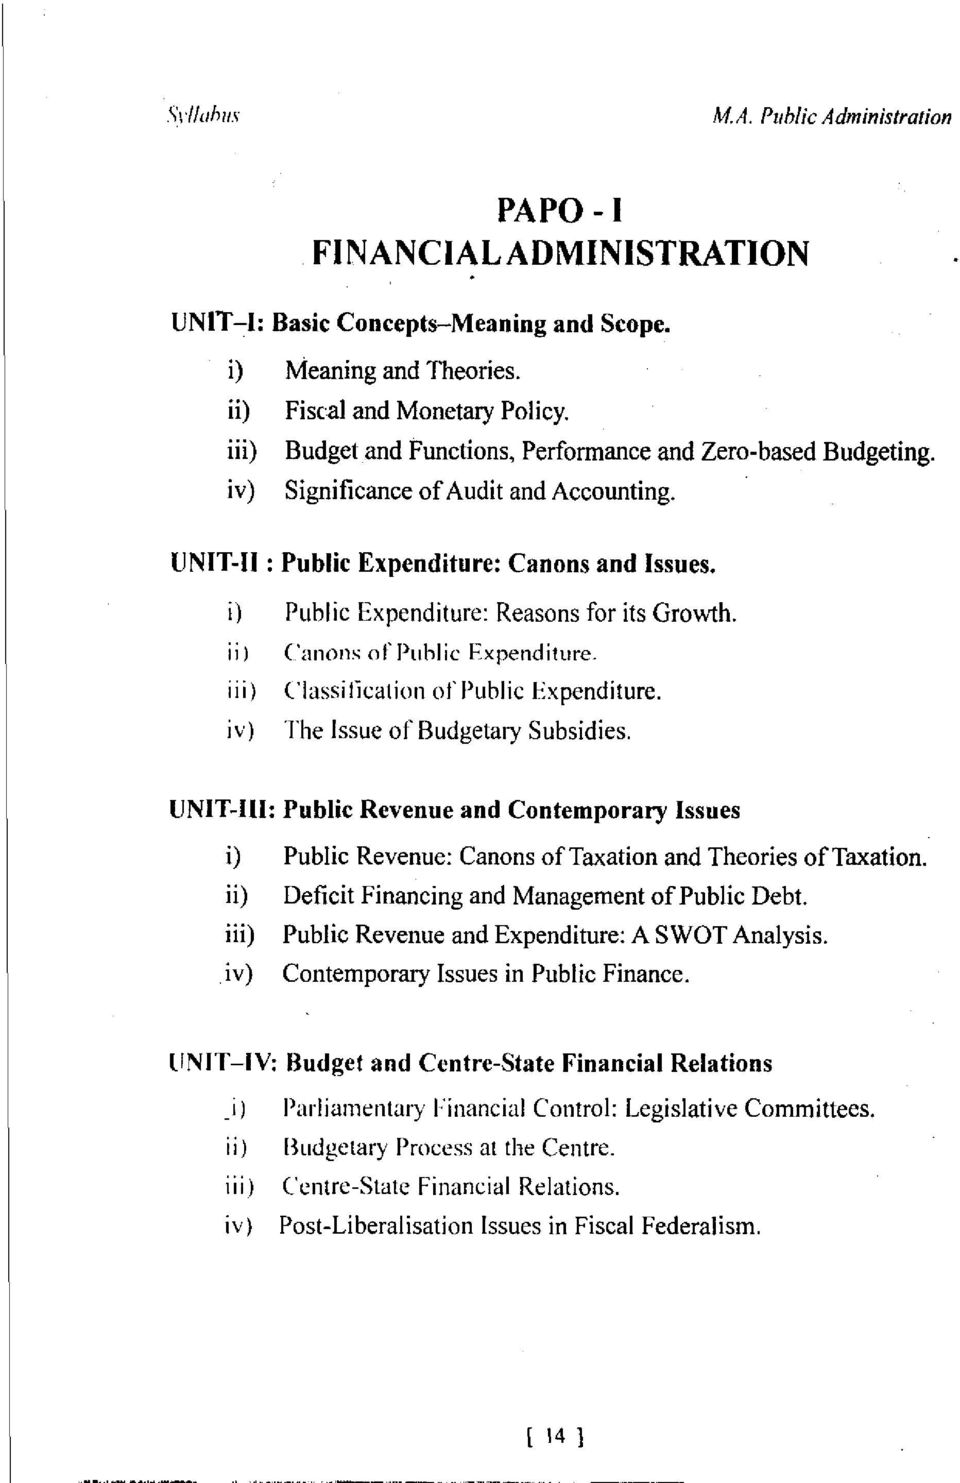 The Issue of Budgetary Subsidies. UNIT-Ill: Public Revenue and Contemporary Issues Public Revenue: Canons of Taxation and Theories of Taxation. Deficit Financing and Management of Public Debt.